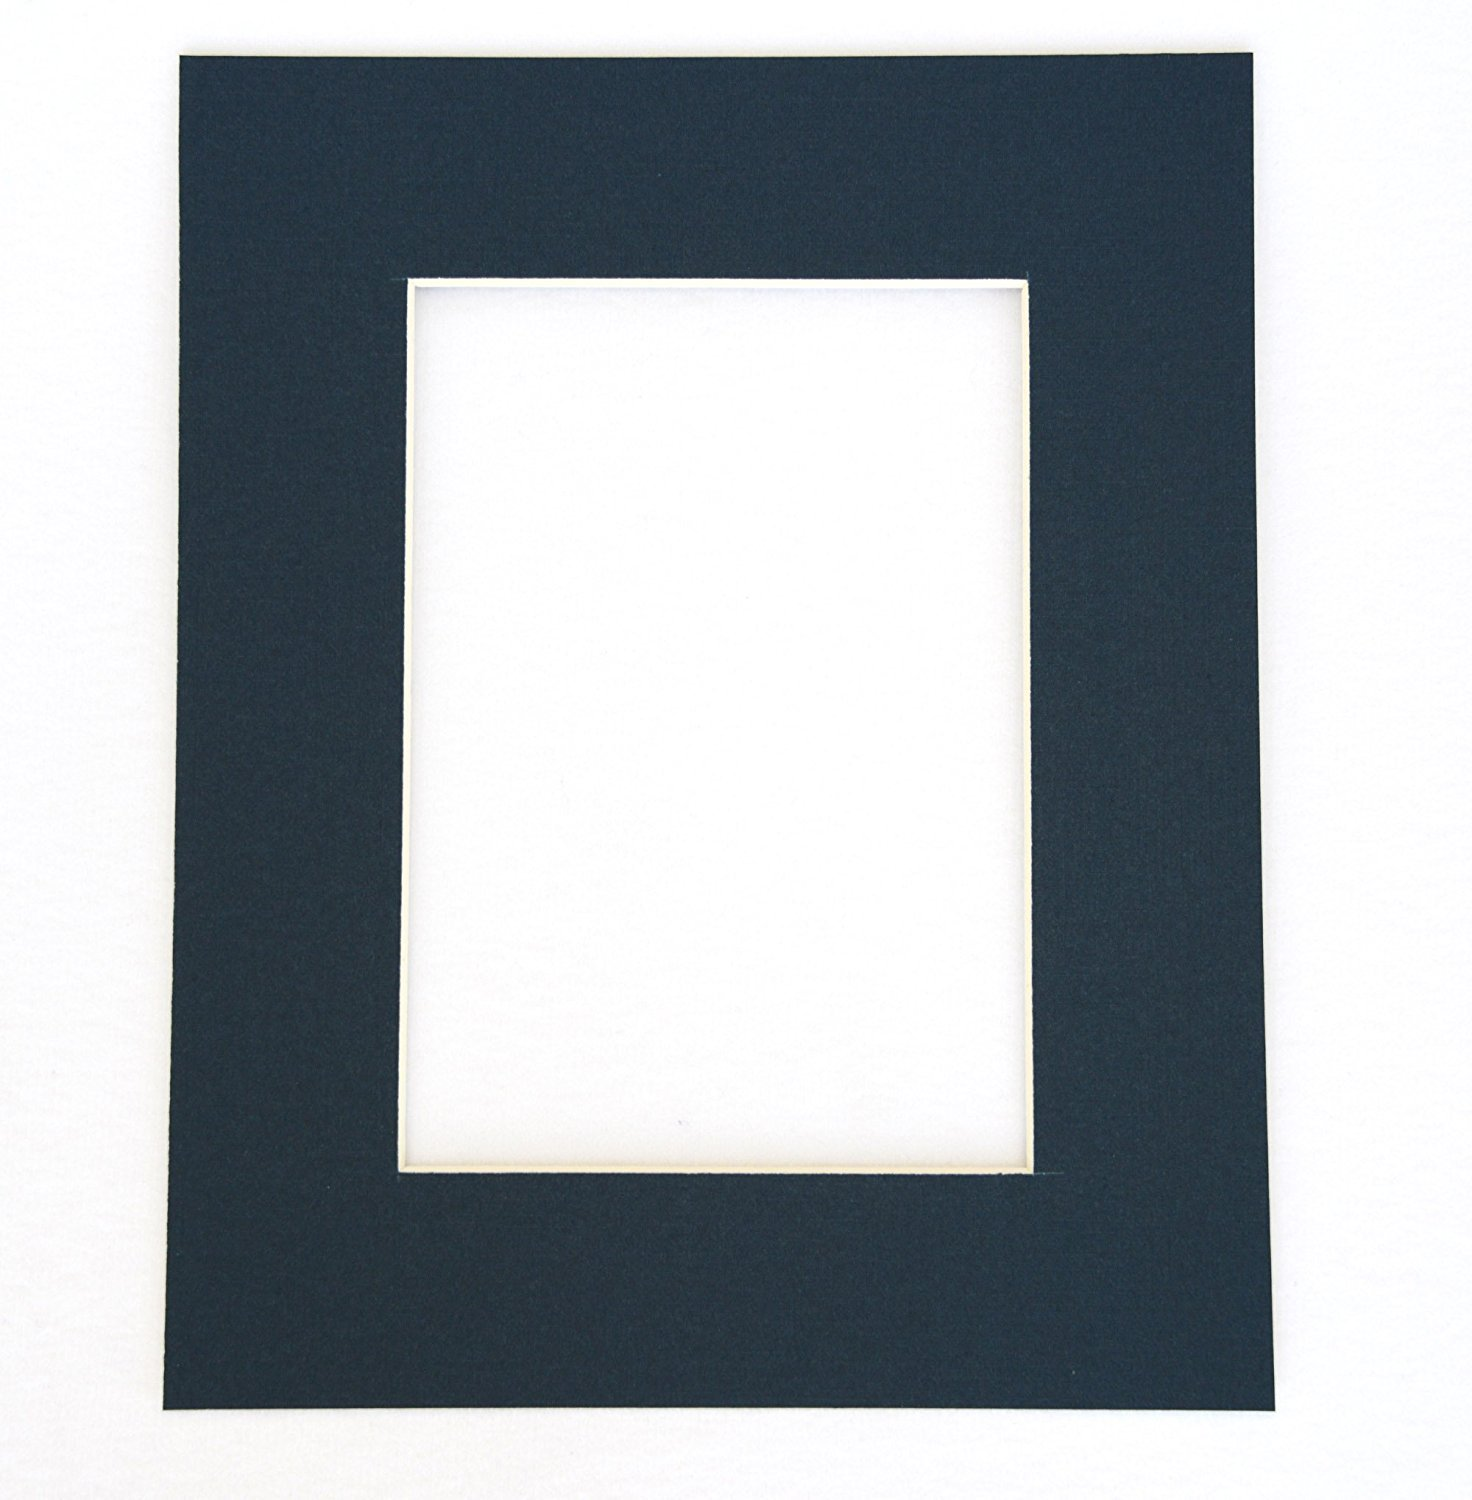 Pack of 10 NAVY BLUE 8x10 Picture Mats Matting with White Core Bevel Cut for 5x7 Pictures